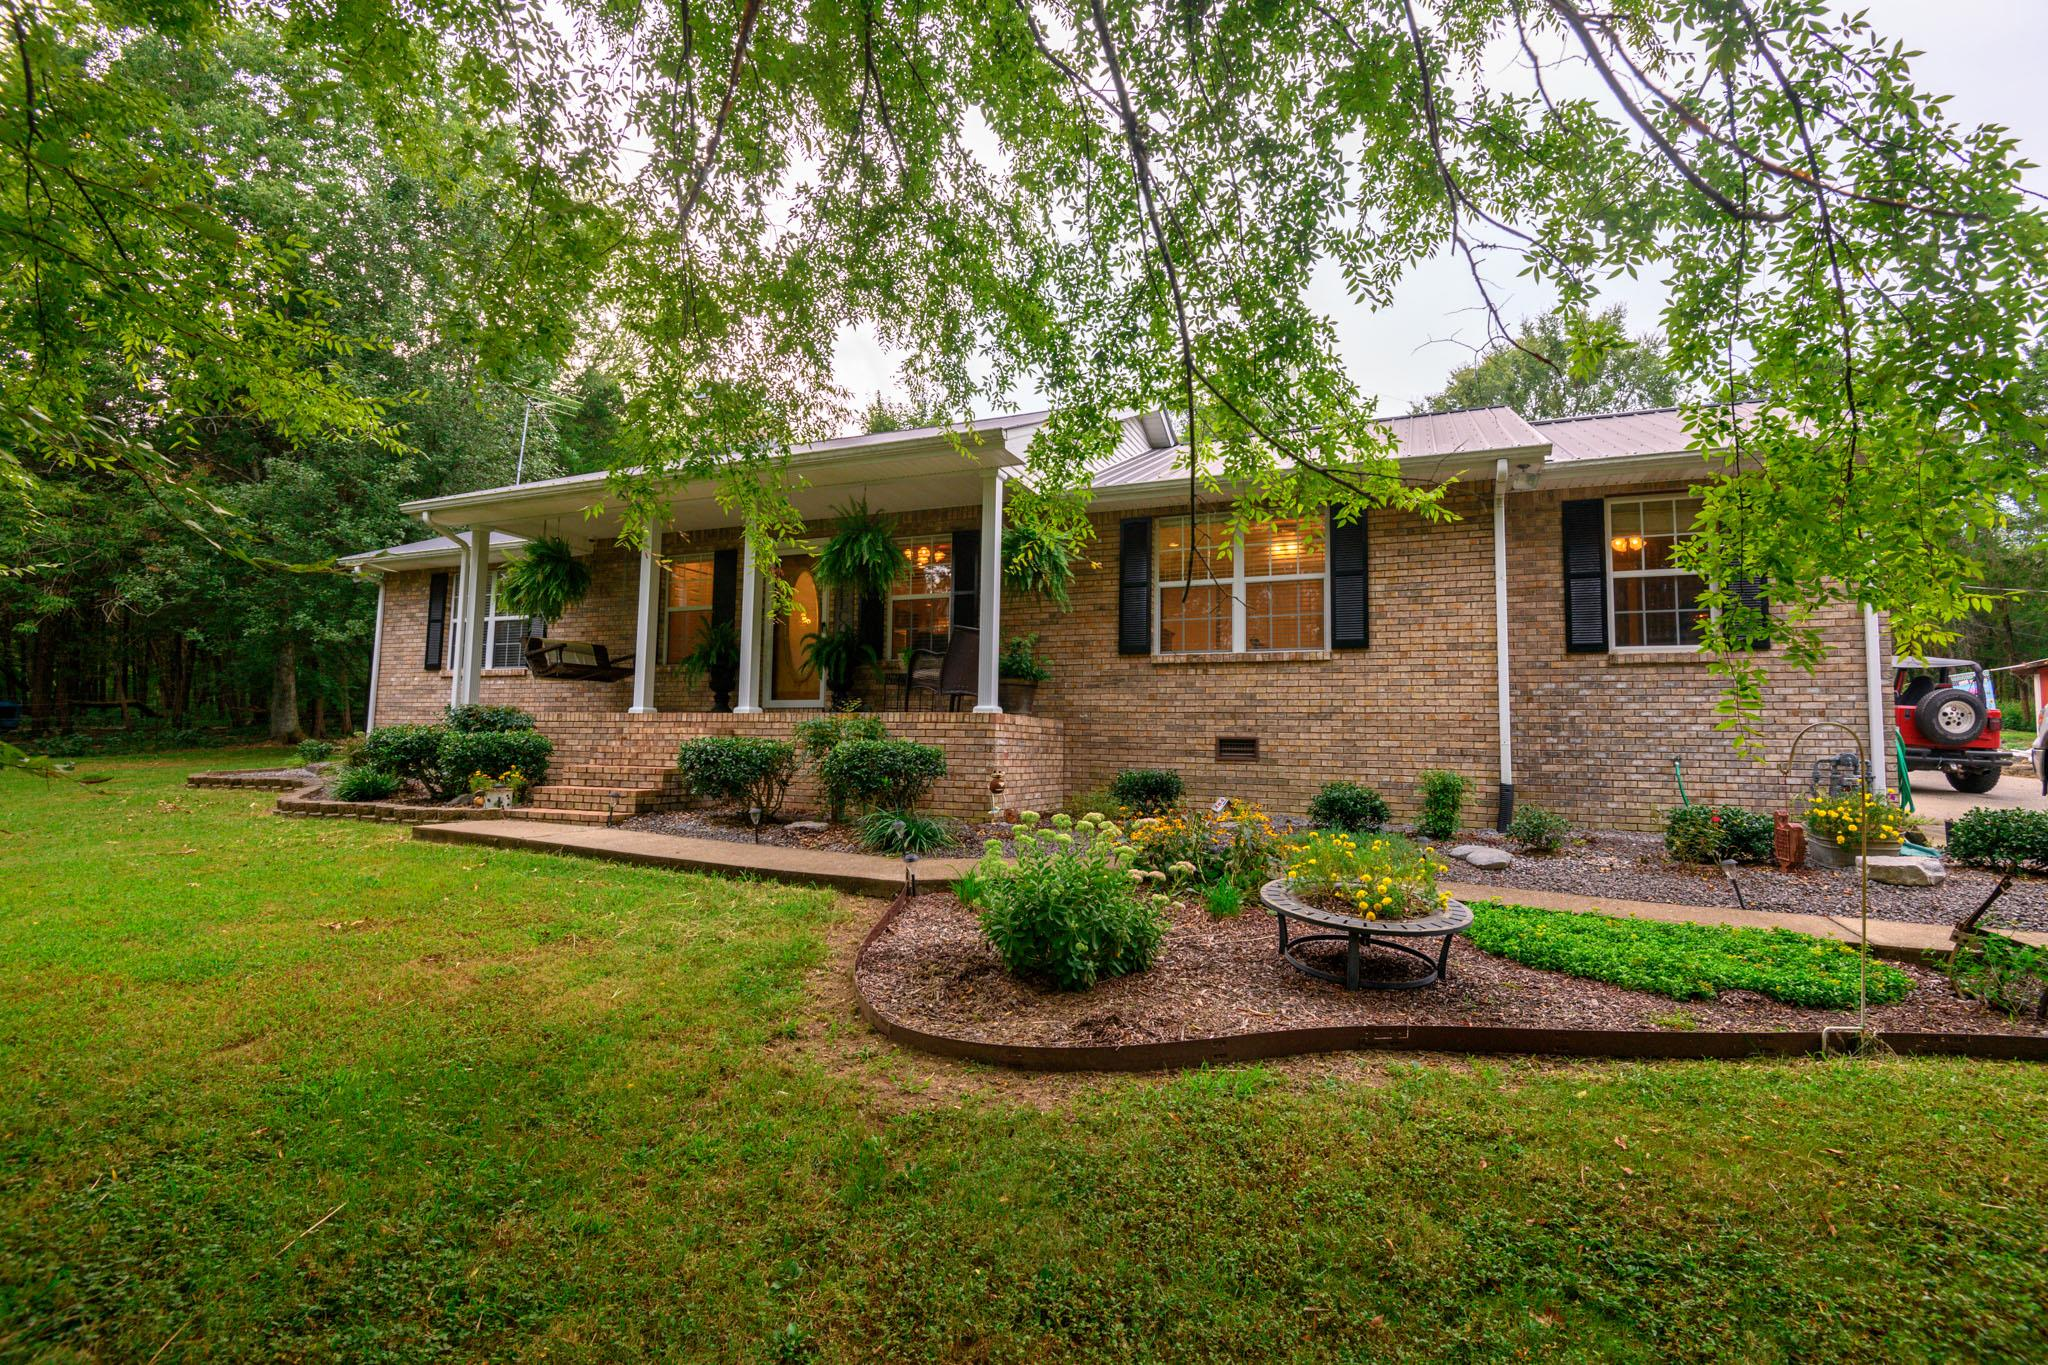 58 Holmes Gap Rd, Brush Creek, TN 38547 - Brush Creek, TN real estate listing